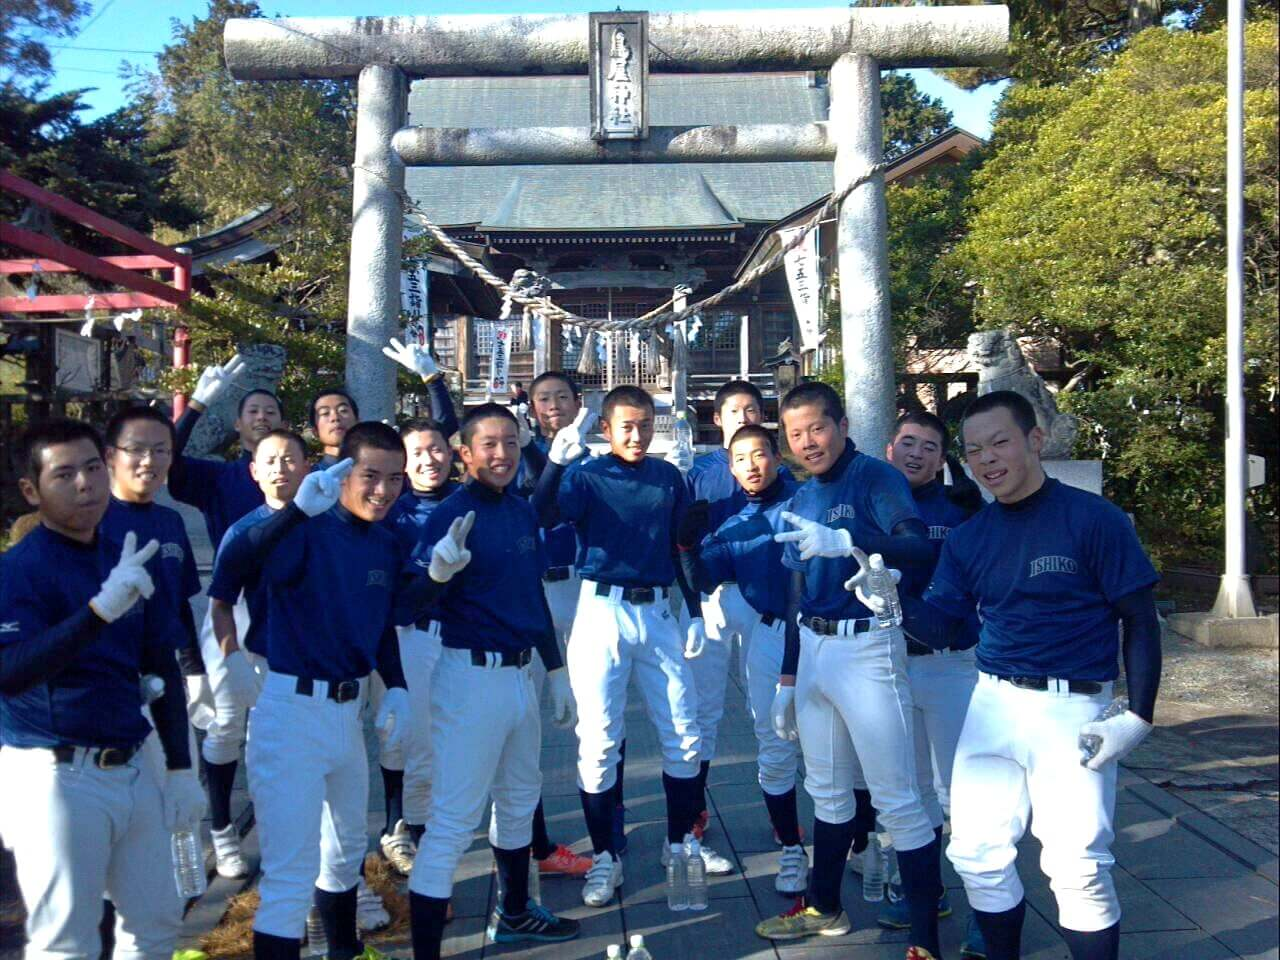 A Japanese school baseball team